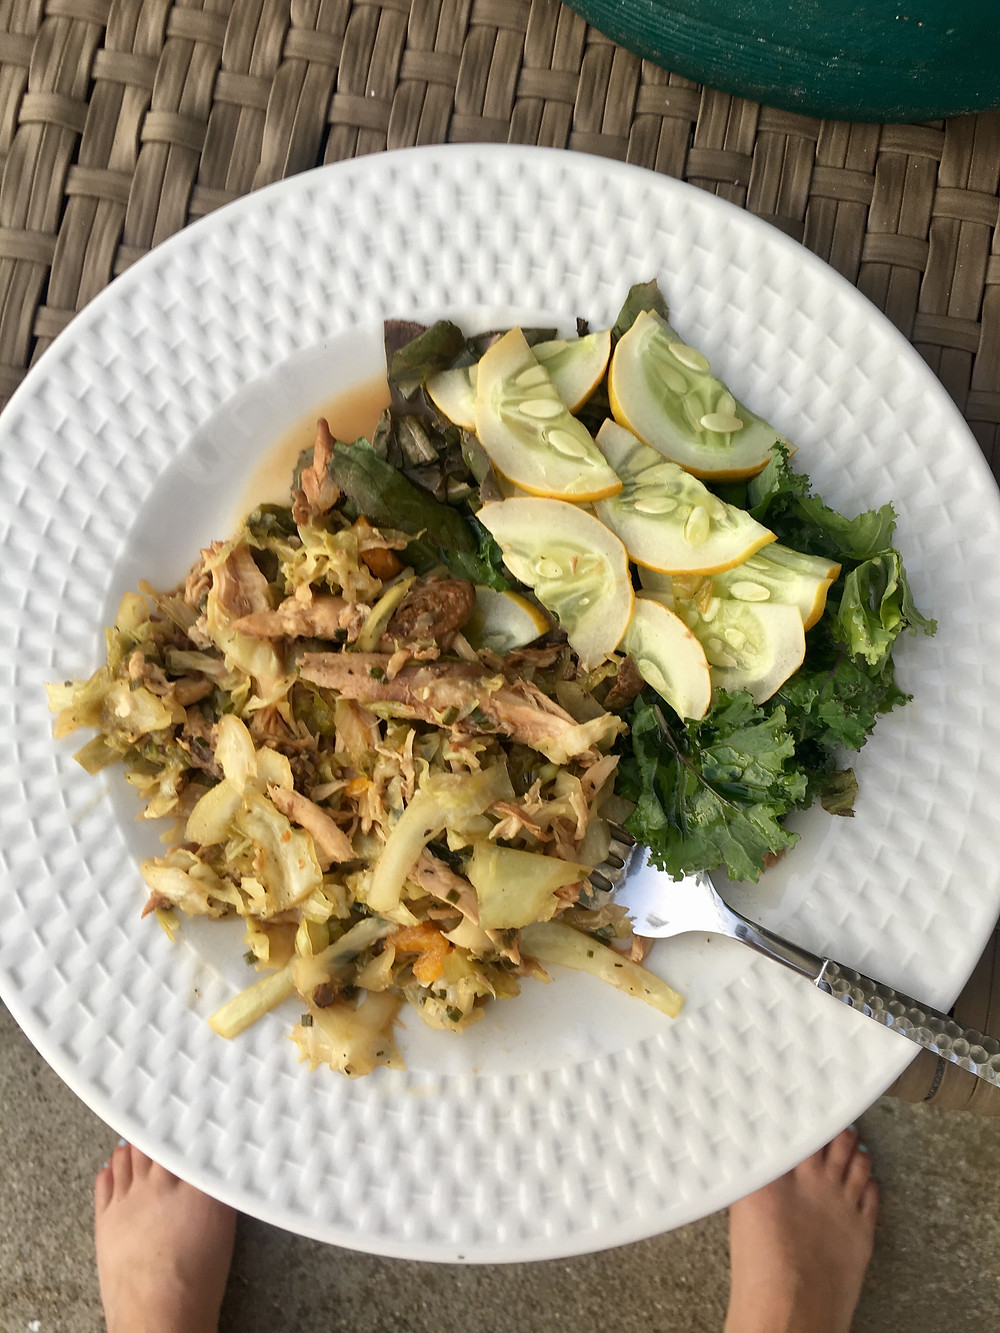 bone broth, leaky gut, cabbage, kale, grow your own, slow cooked chicken